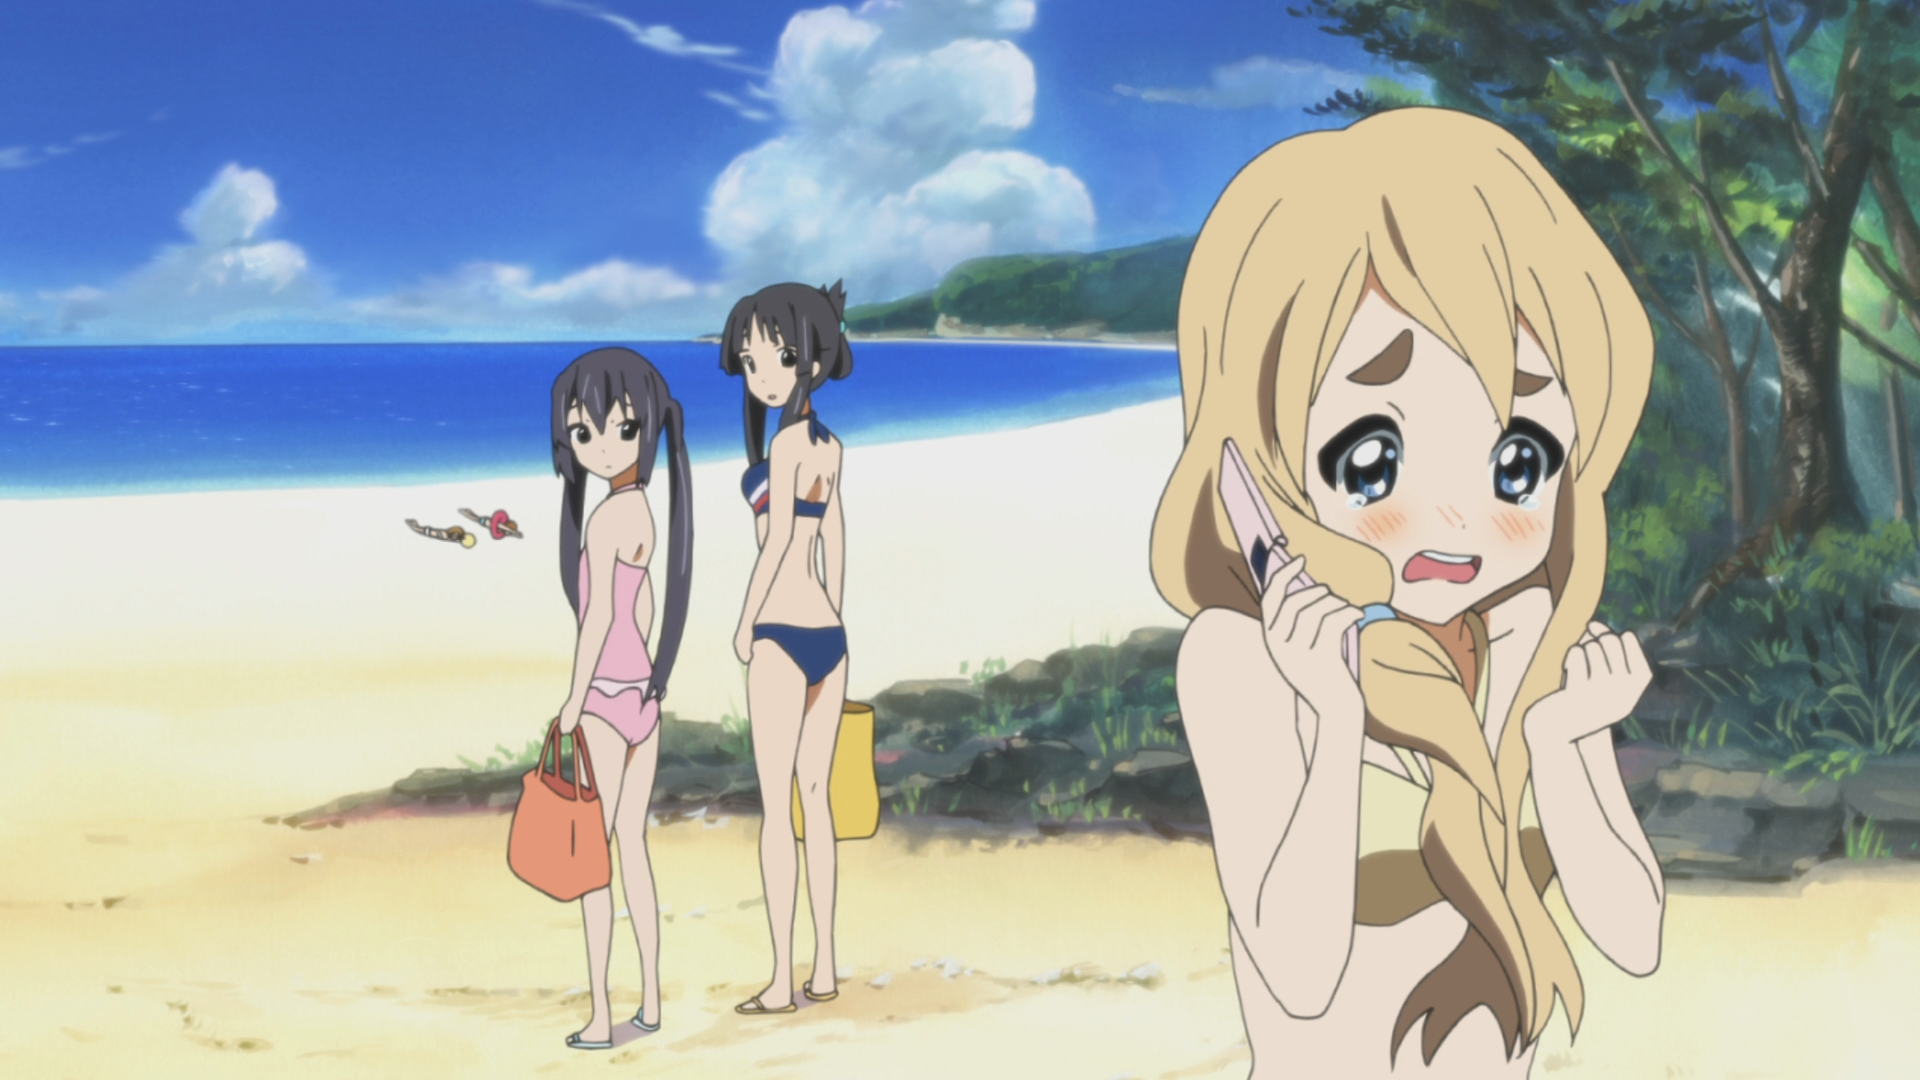 Mugi Doesnt Want All The Beach Material